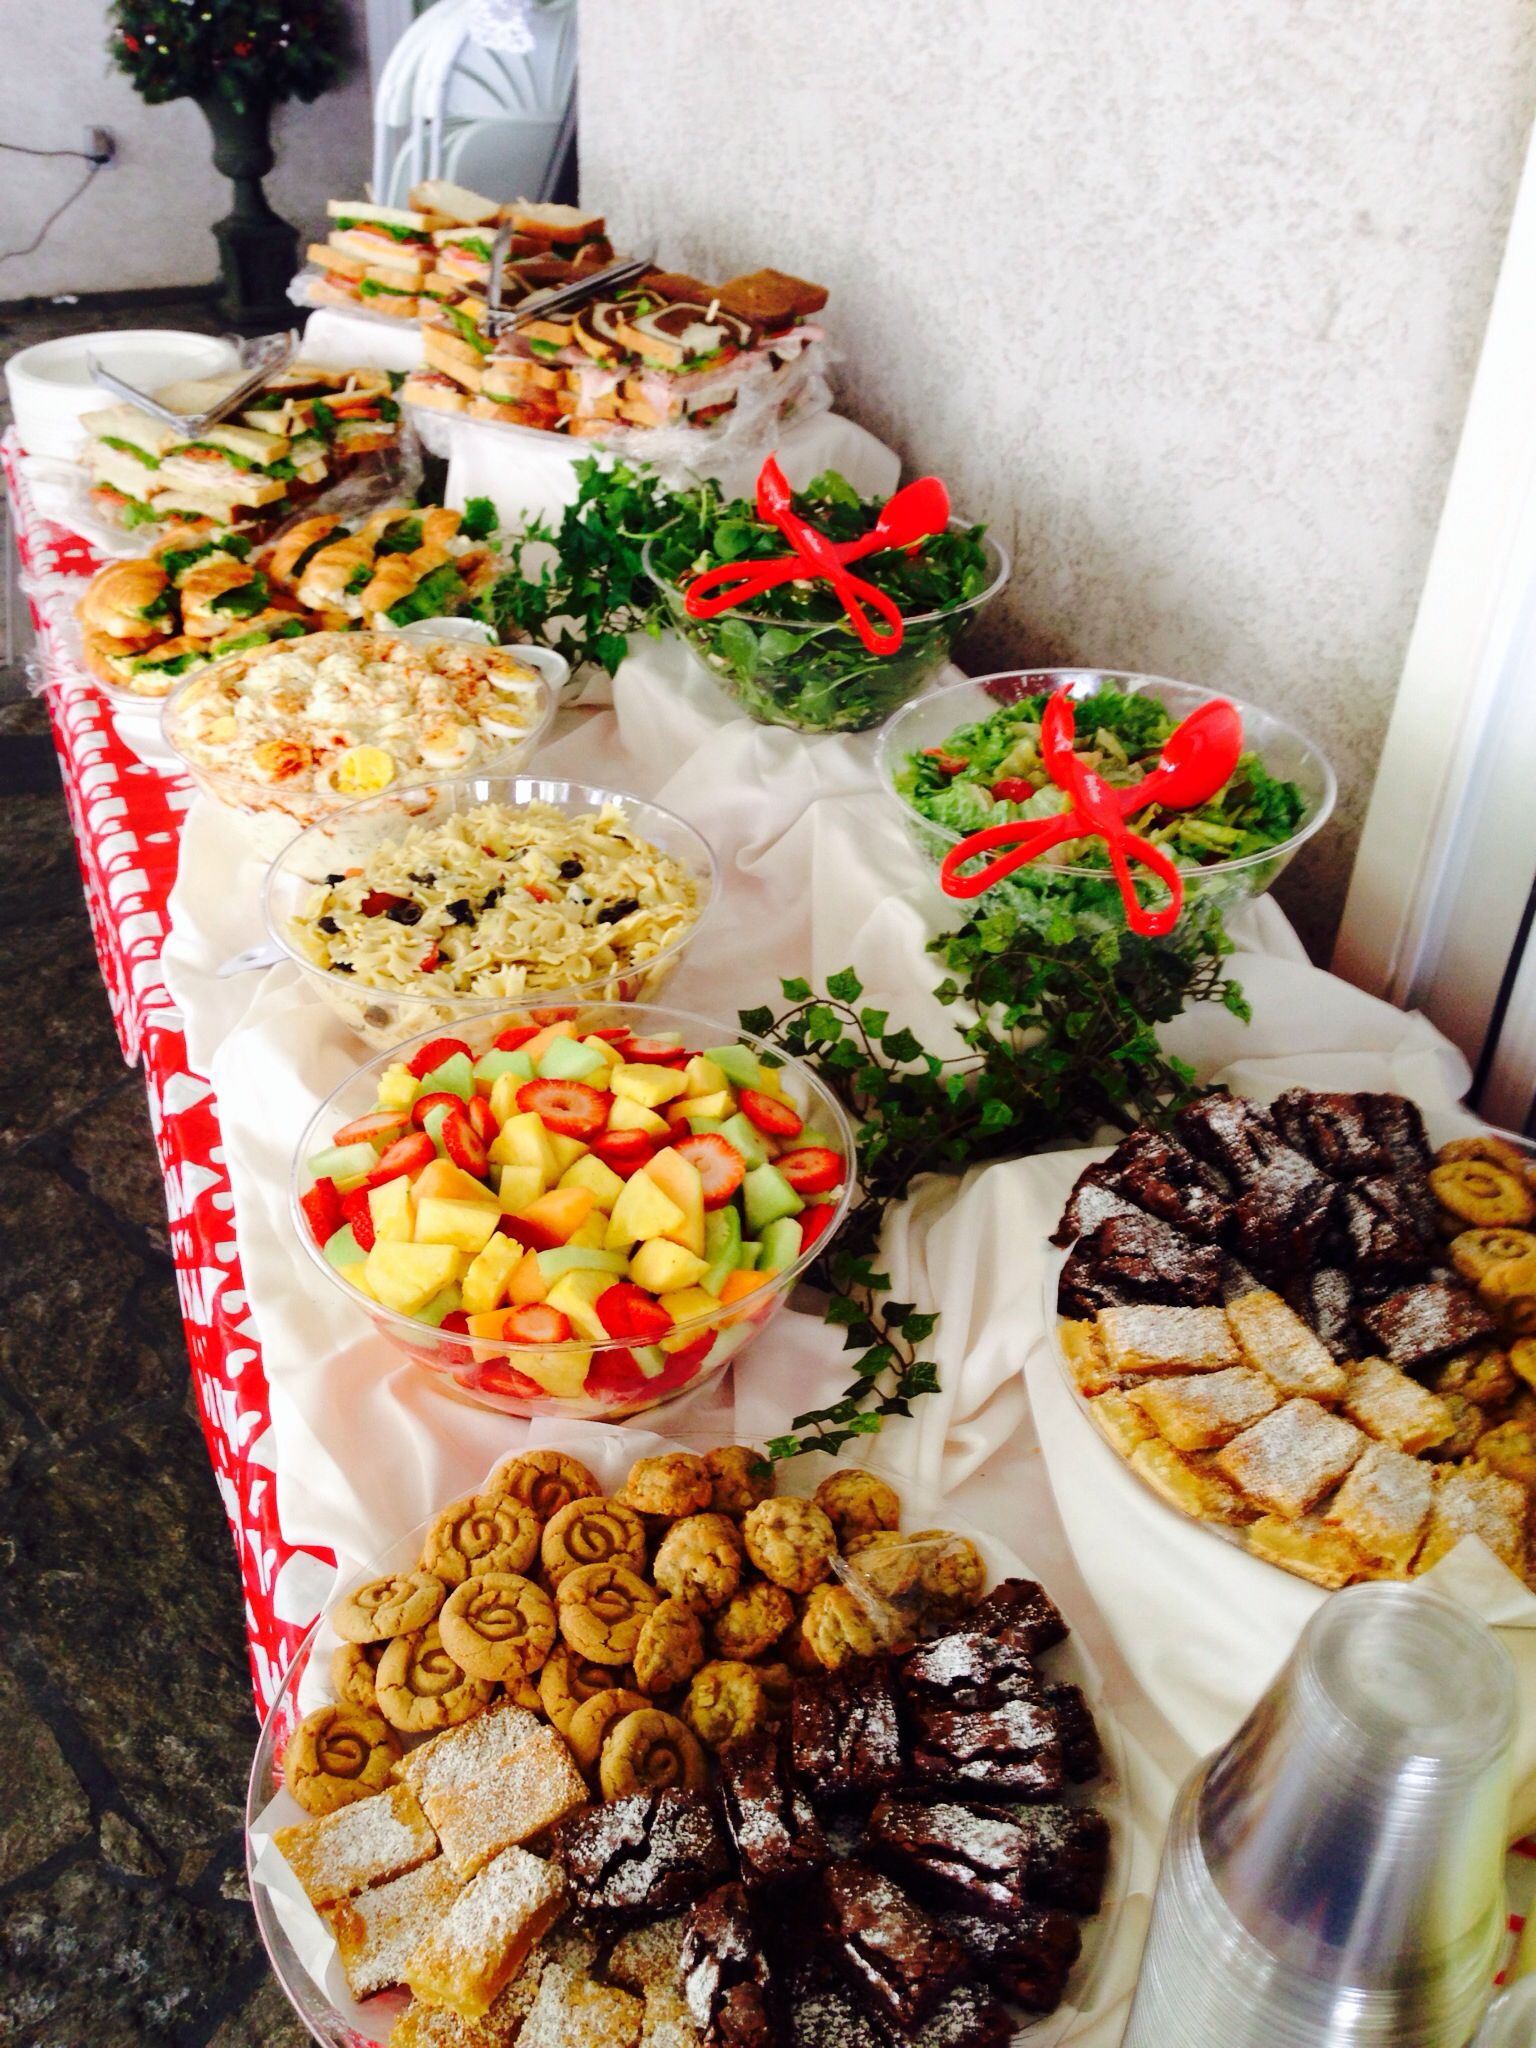 Celebration Of Life Gathering Catering The Avocado